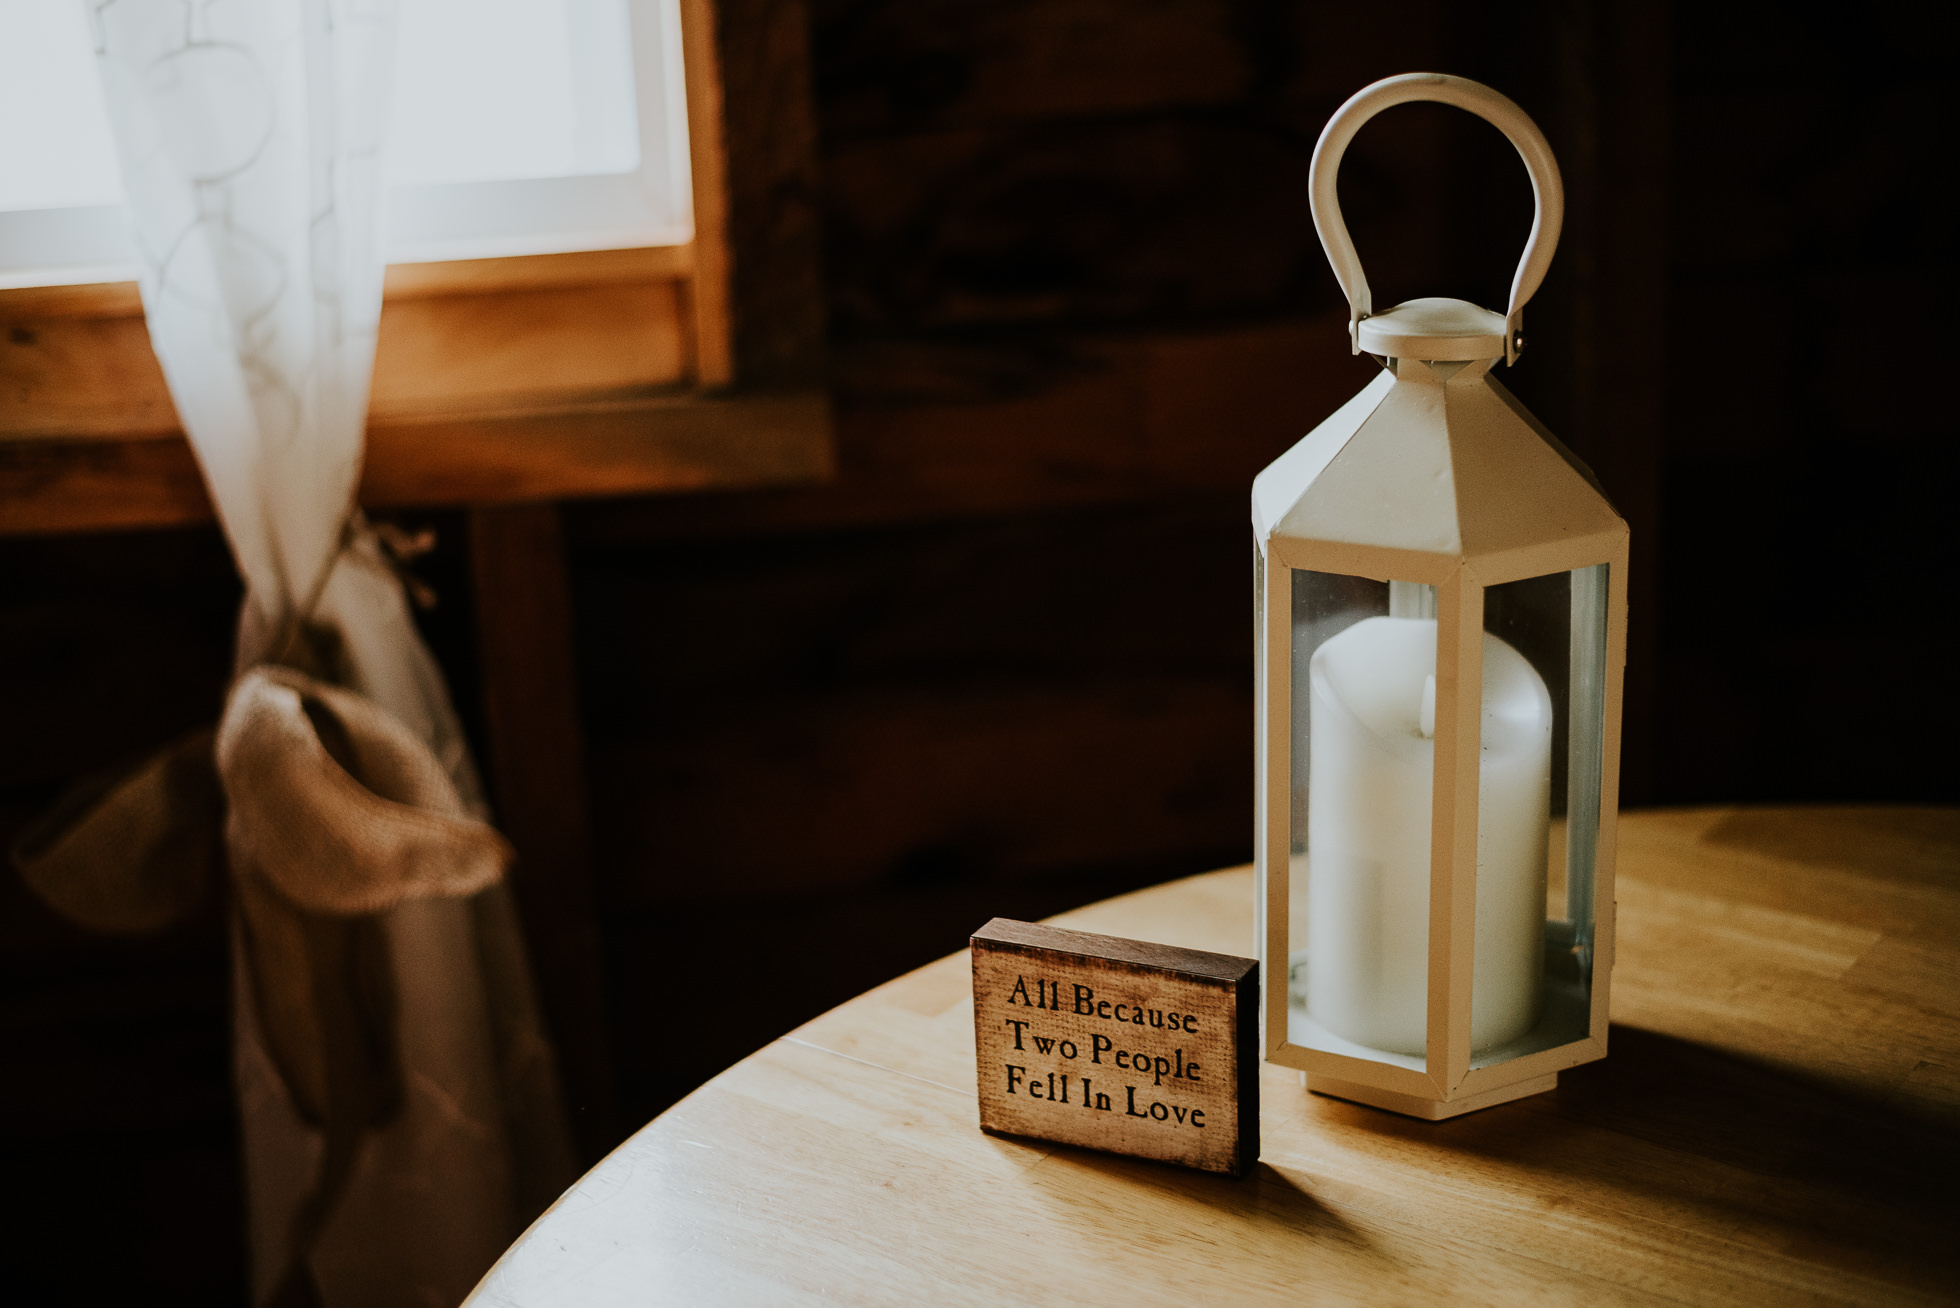 ceremony candle at olde tater barn wedding in central bridge, ny photographed by traverse the tides